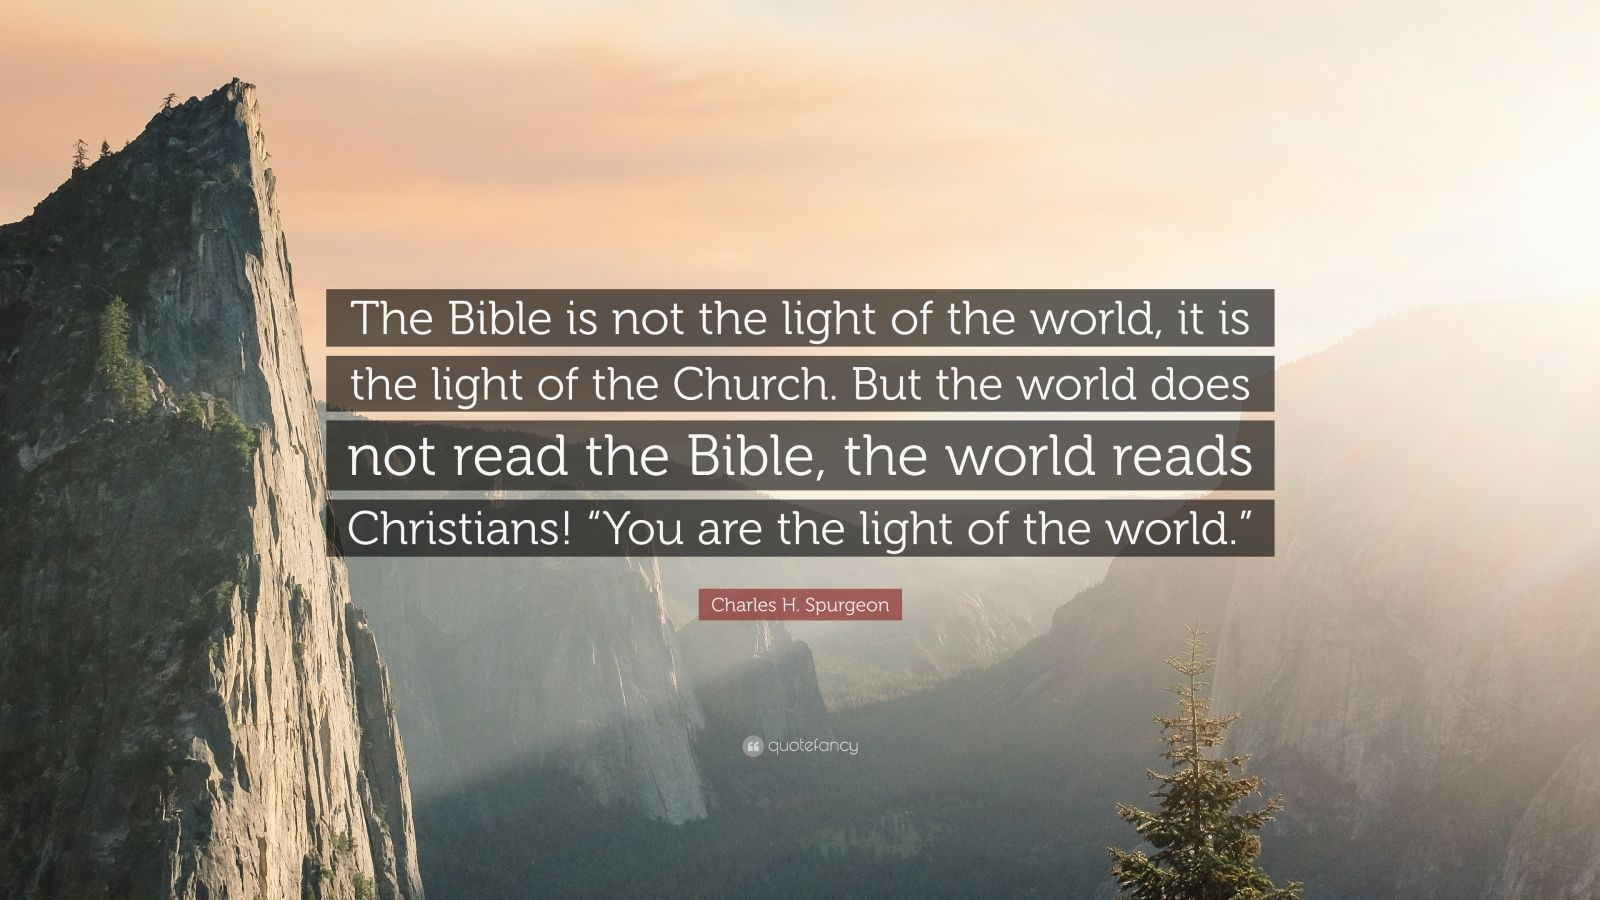 """Charles H. Spurgeon Quote: """"The Bible is not the light of the world, it is the light of the Church. But the world does not read the Bible, the world reads Christians! """"You are the light of the world."""""""""""